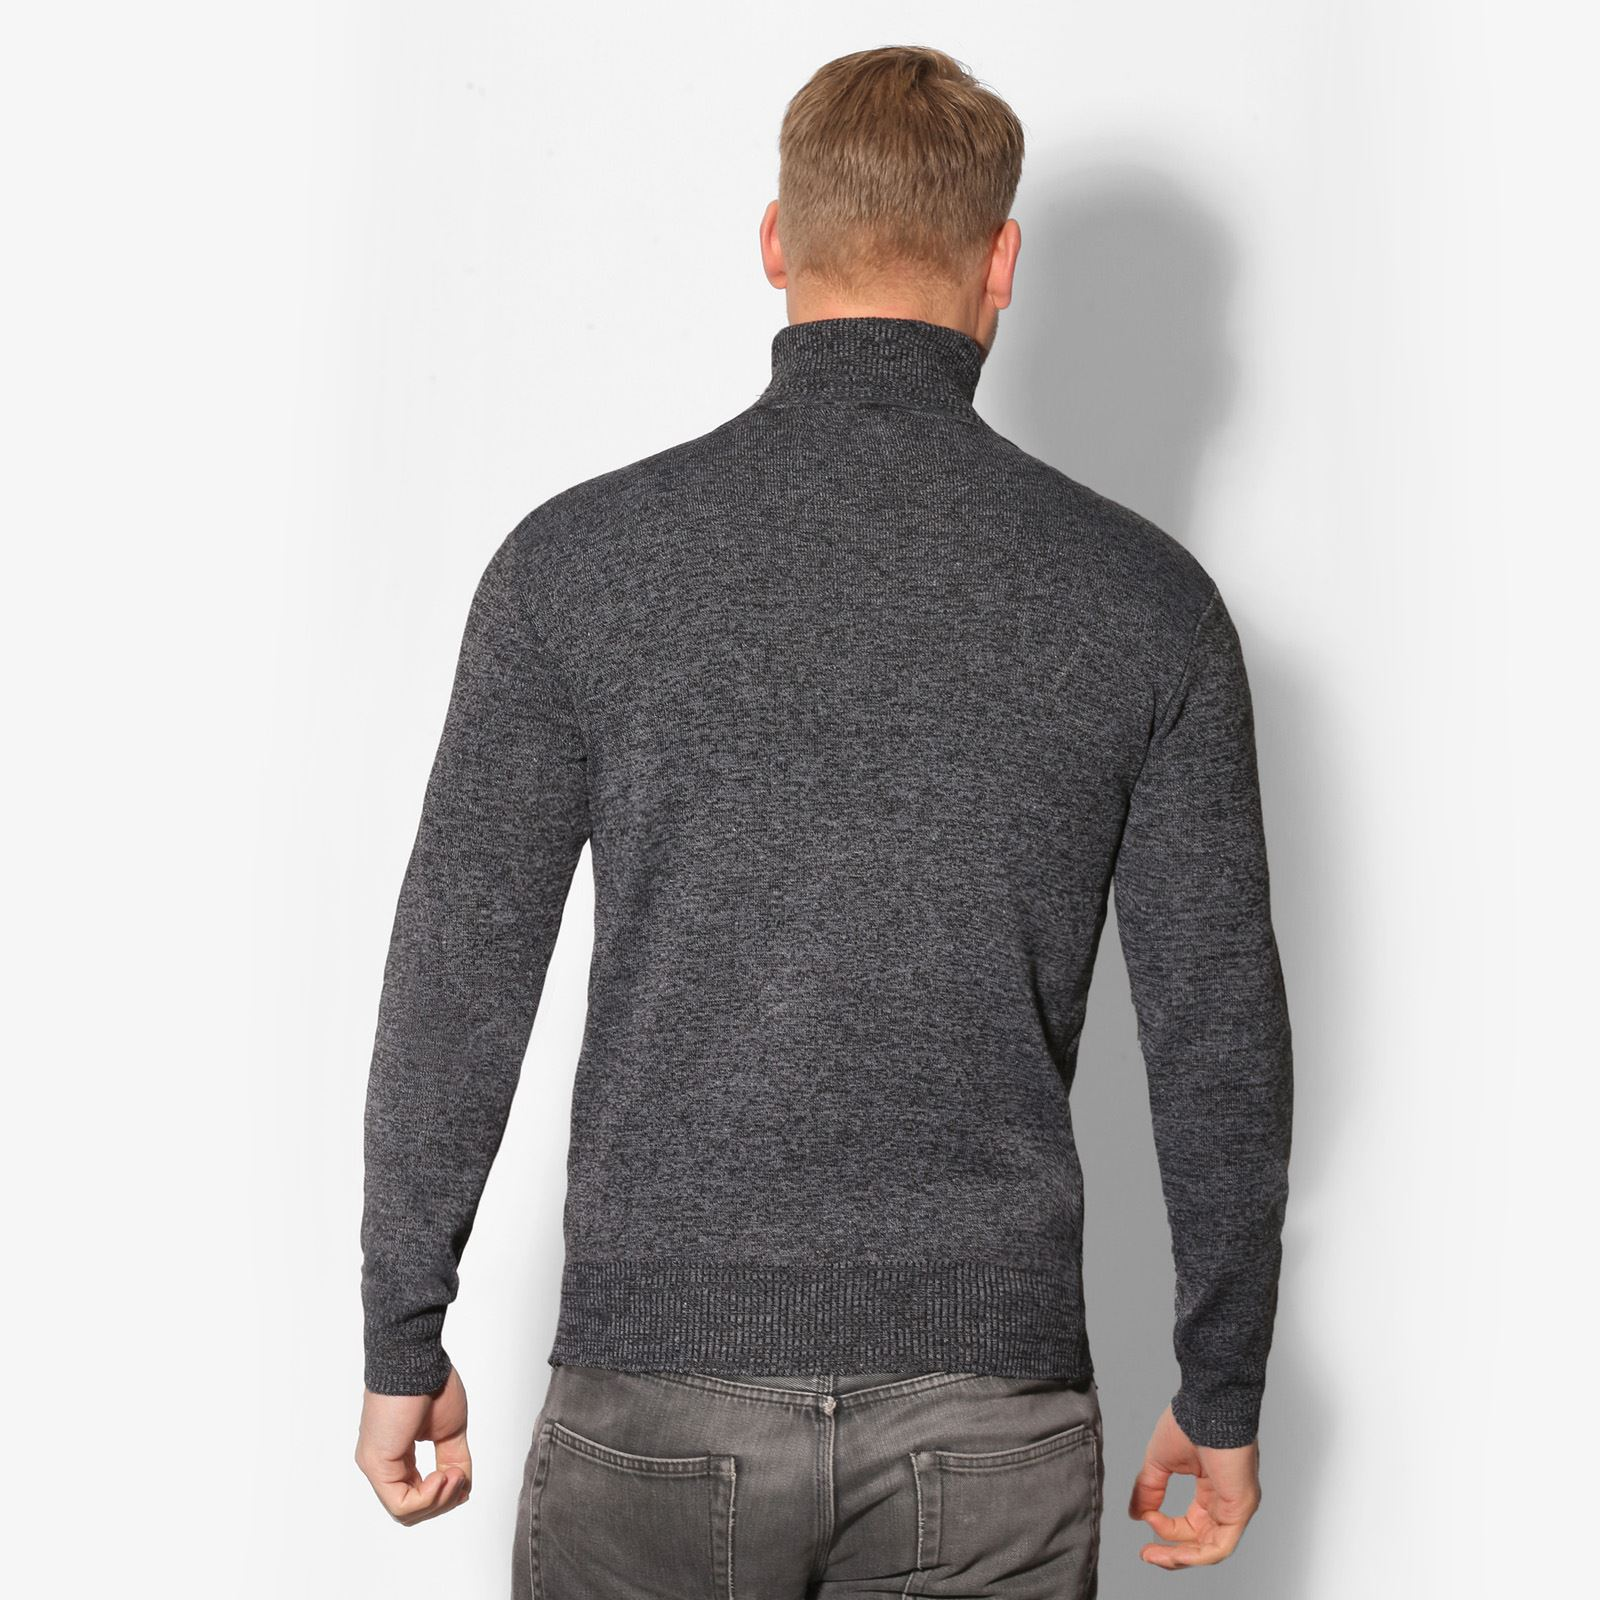 Mens-Turtle-Neck-Roll-Jumper-Sweater-Cotton-Knitwear-Winter-Pullover-Polo-Top thumbnail 11